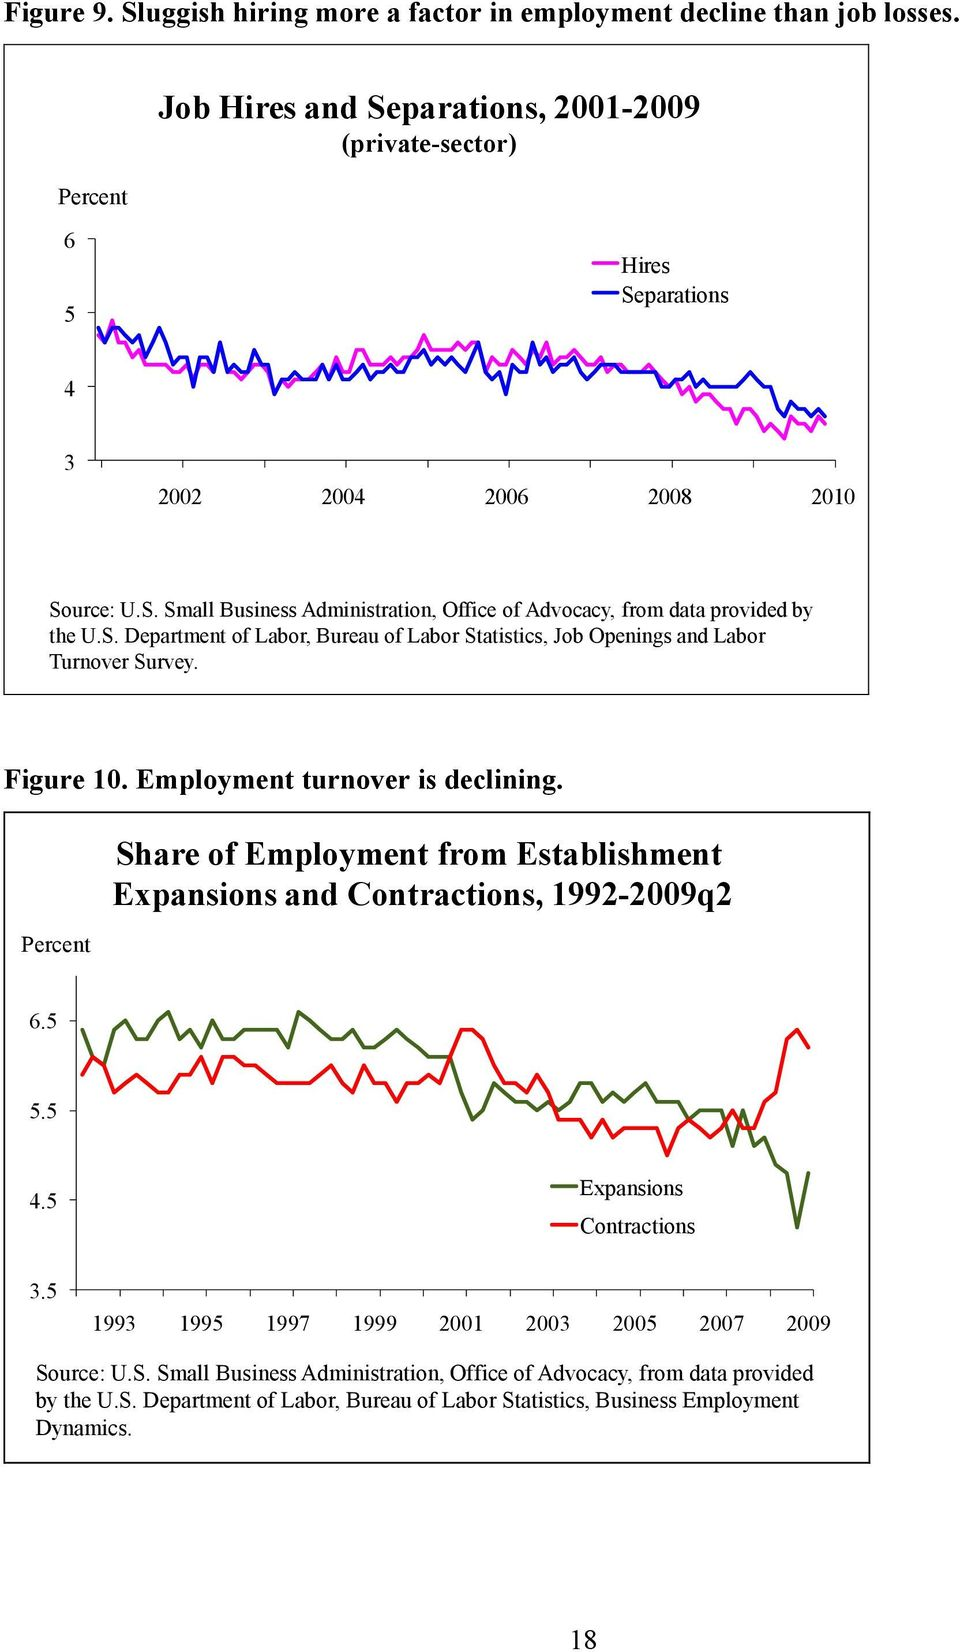 S. Department of Labor, Bureau of Labor Statistics, Job Openings and Labor Turnover Survey. Figure 10. Employment turnover is declining.